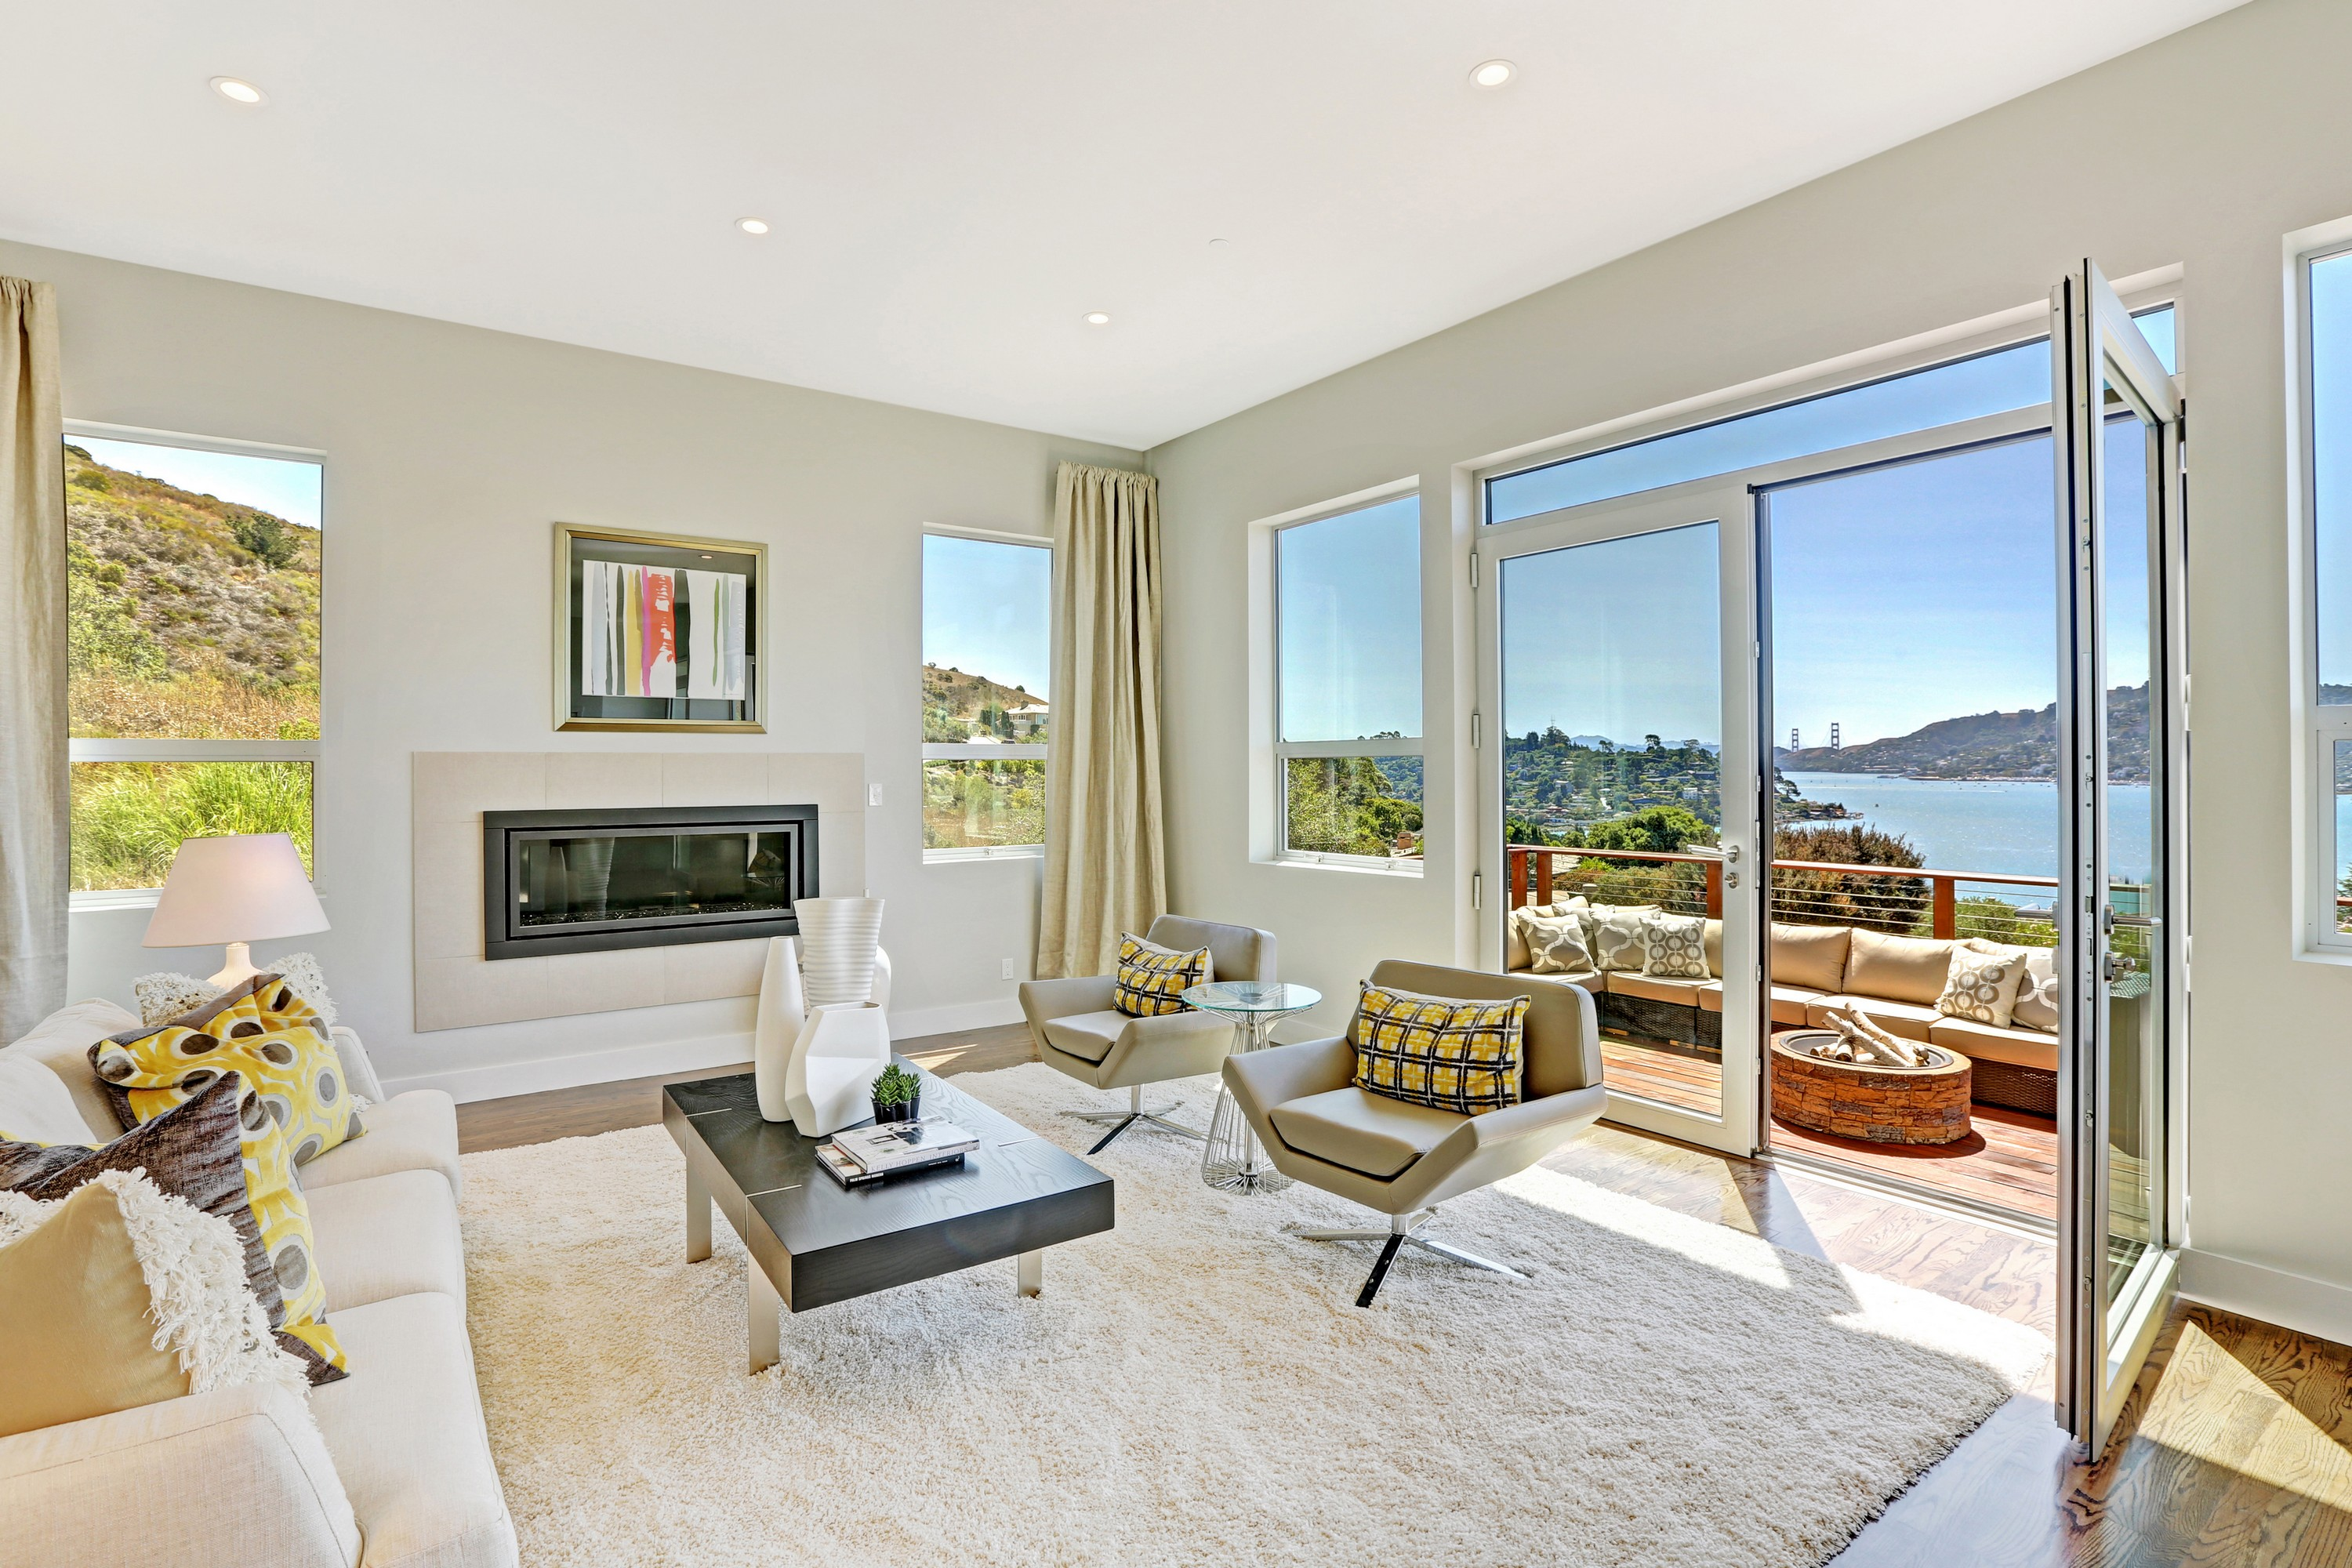 Property For Sale at Stunning Tiburon View Home